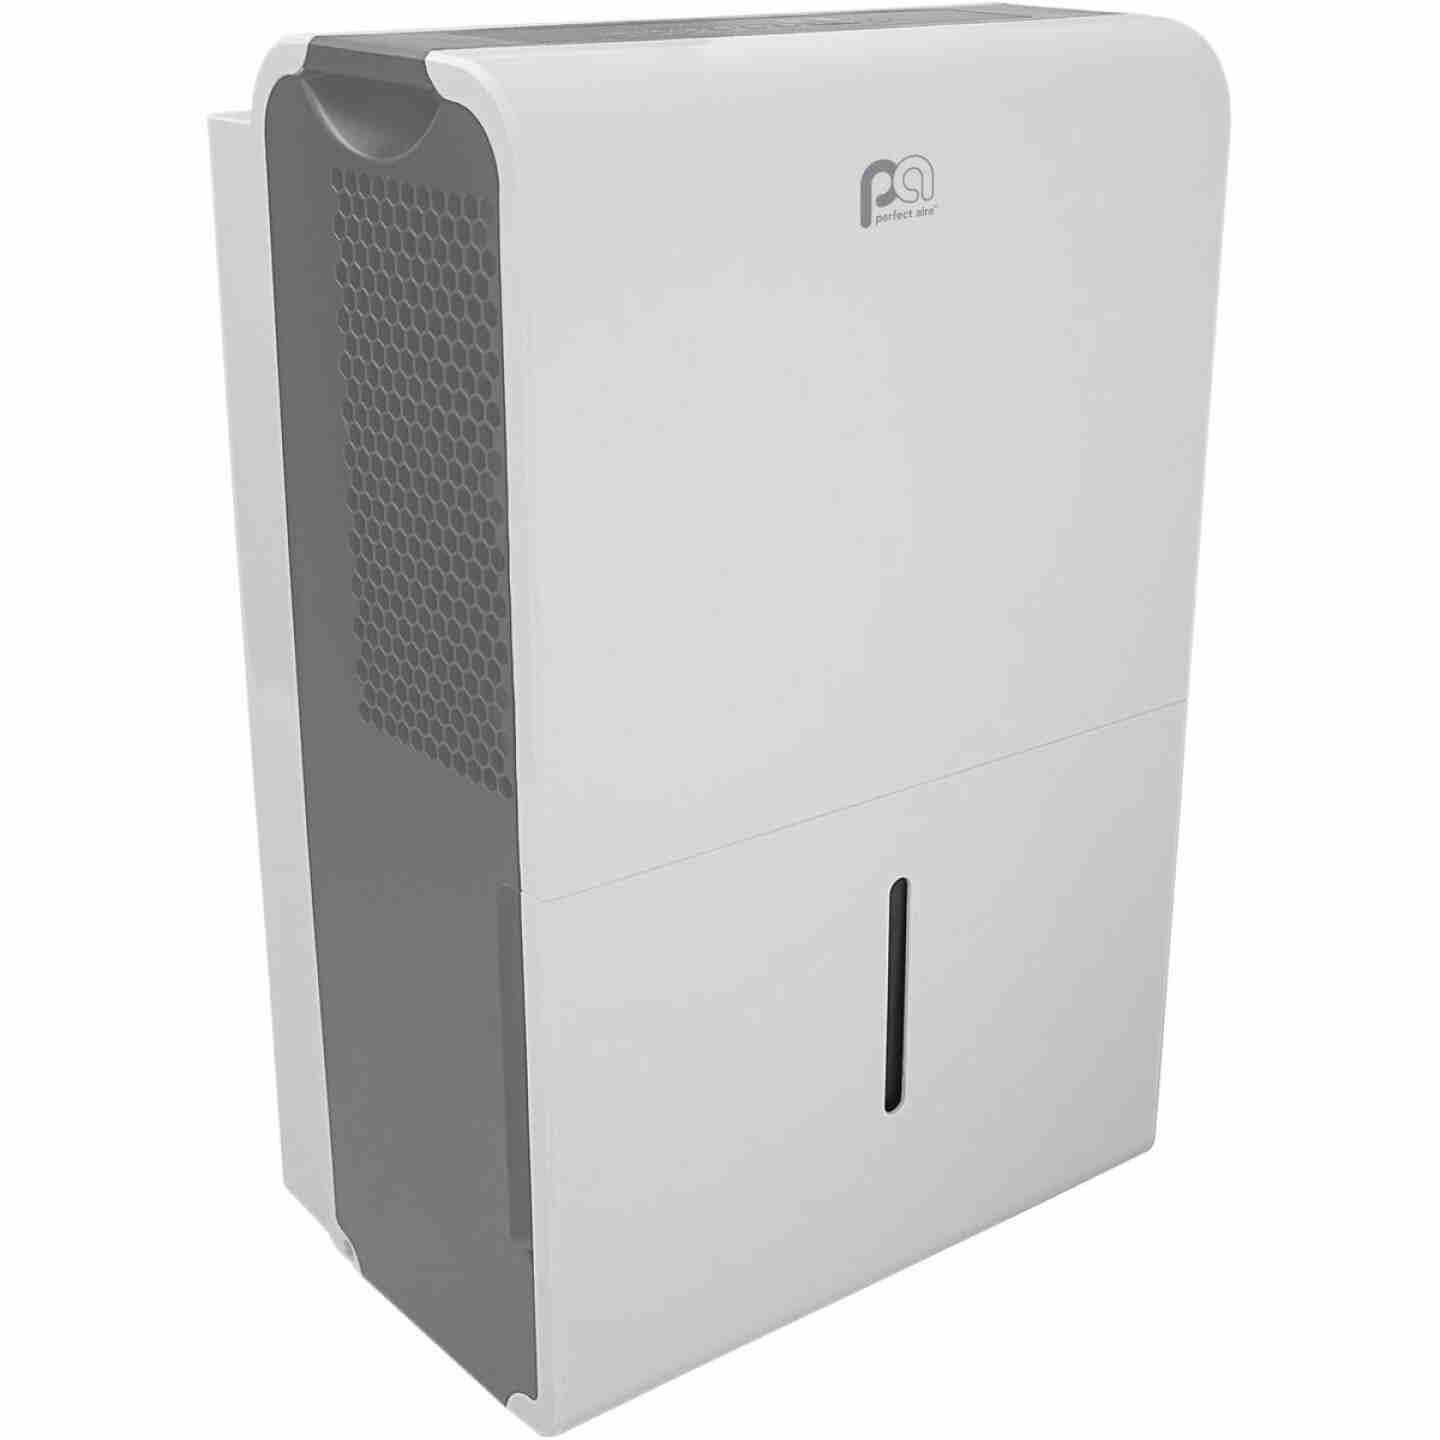 Perfect Aire 50 Pt./Day 645 Sq. Ft. Coverage 2-Speed Flat Panel Dehumidifier Image 3